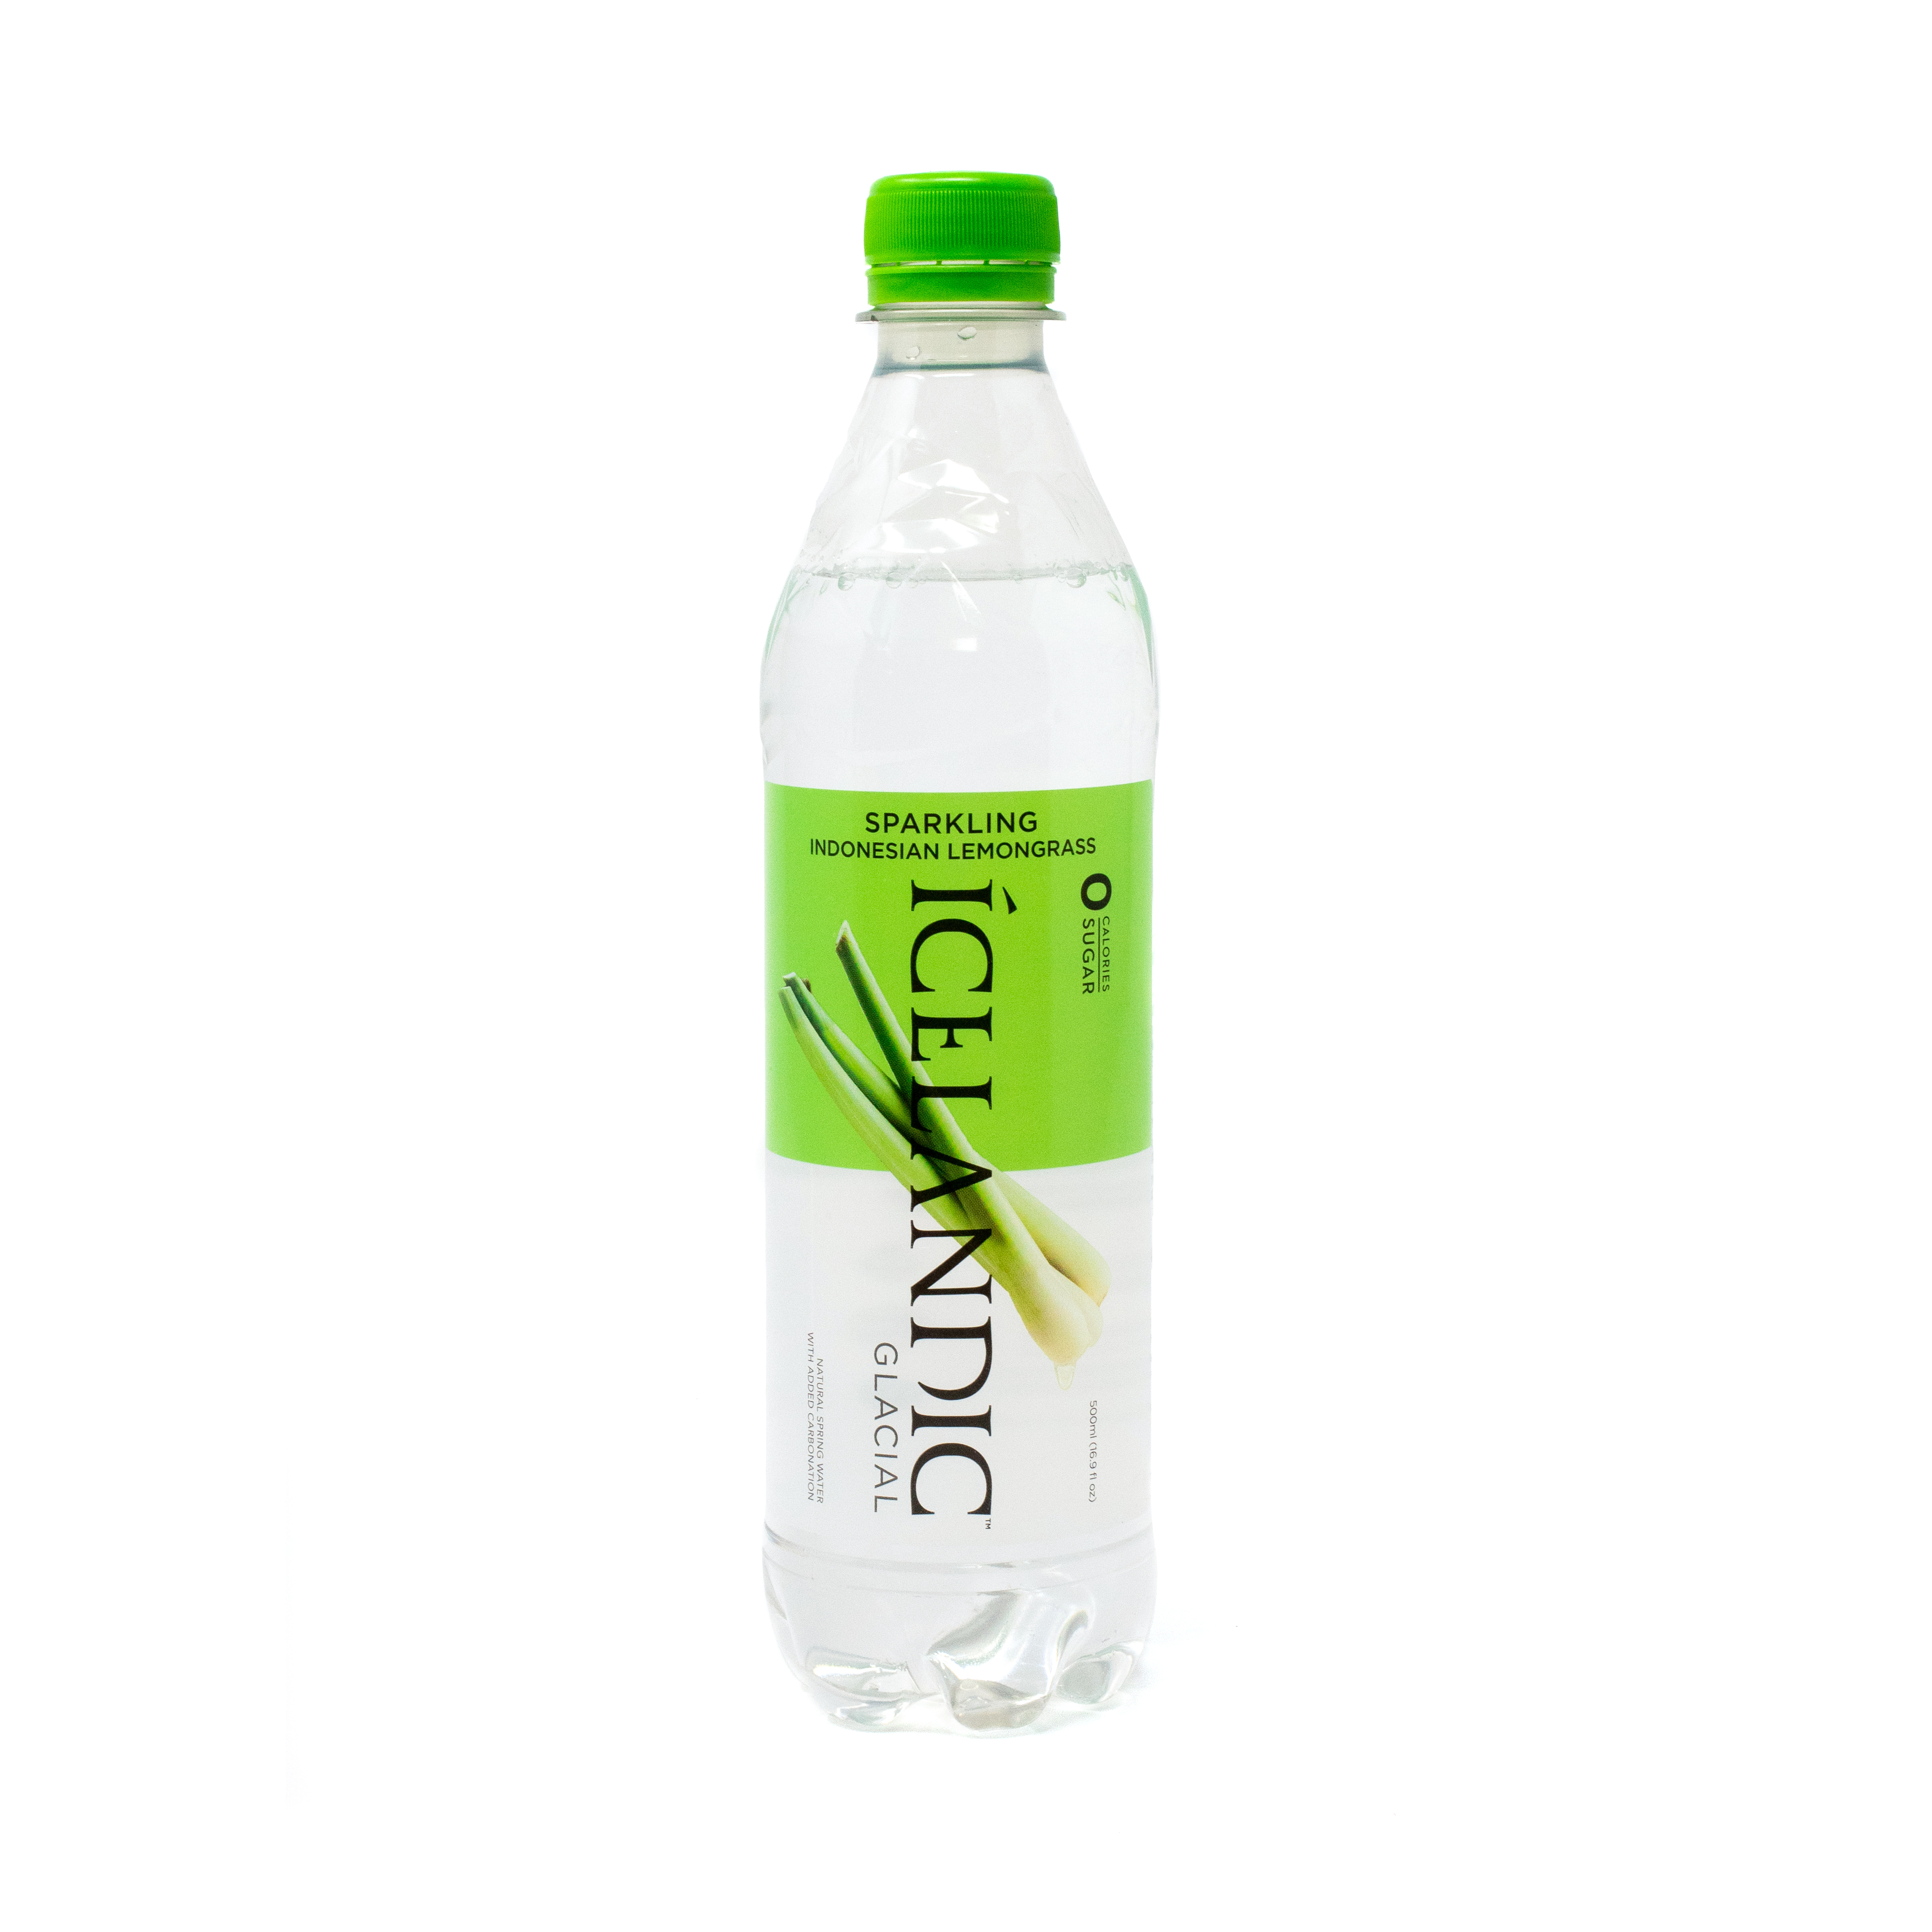 Icelandic Glacial Sparkling Water - Indonesian Lemongrass